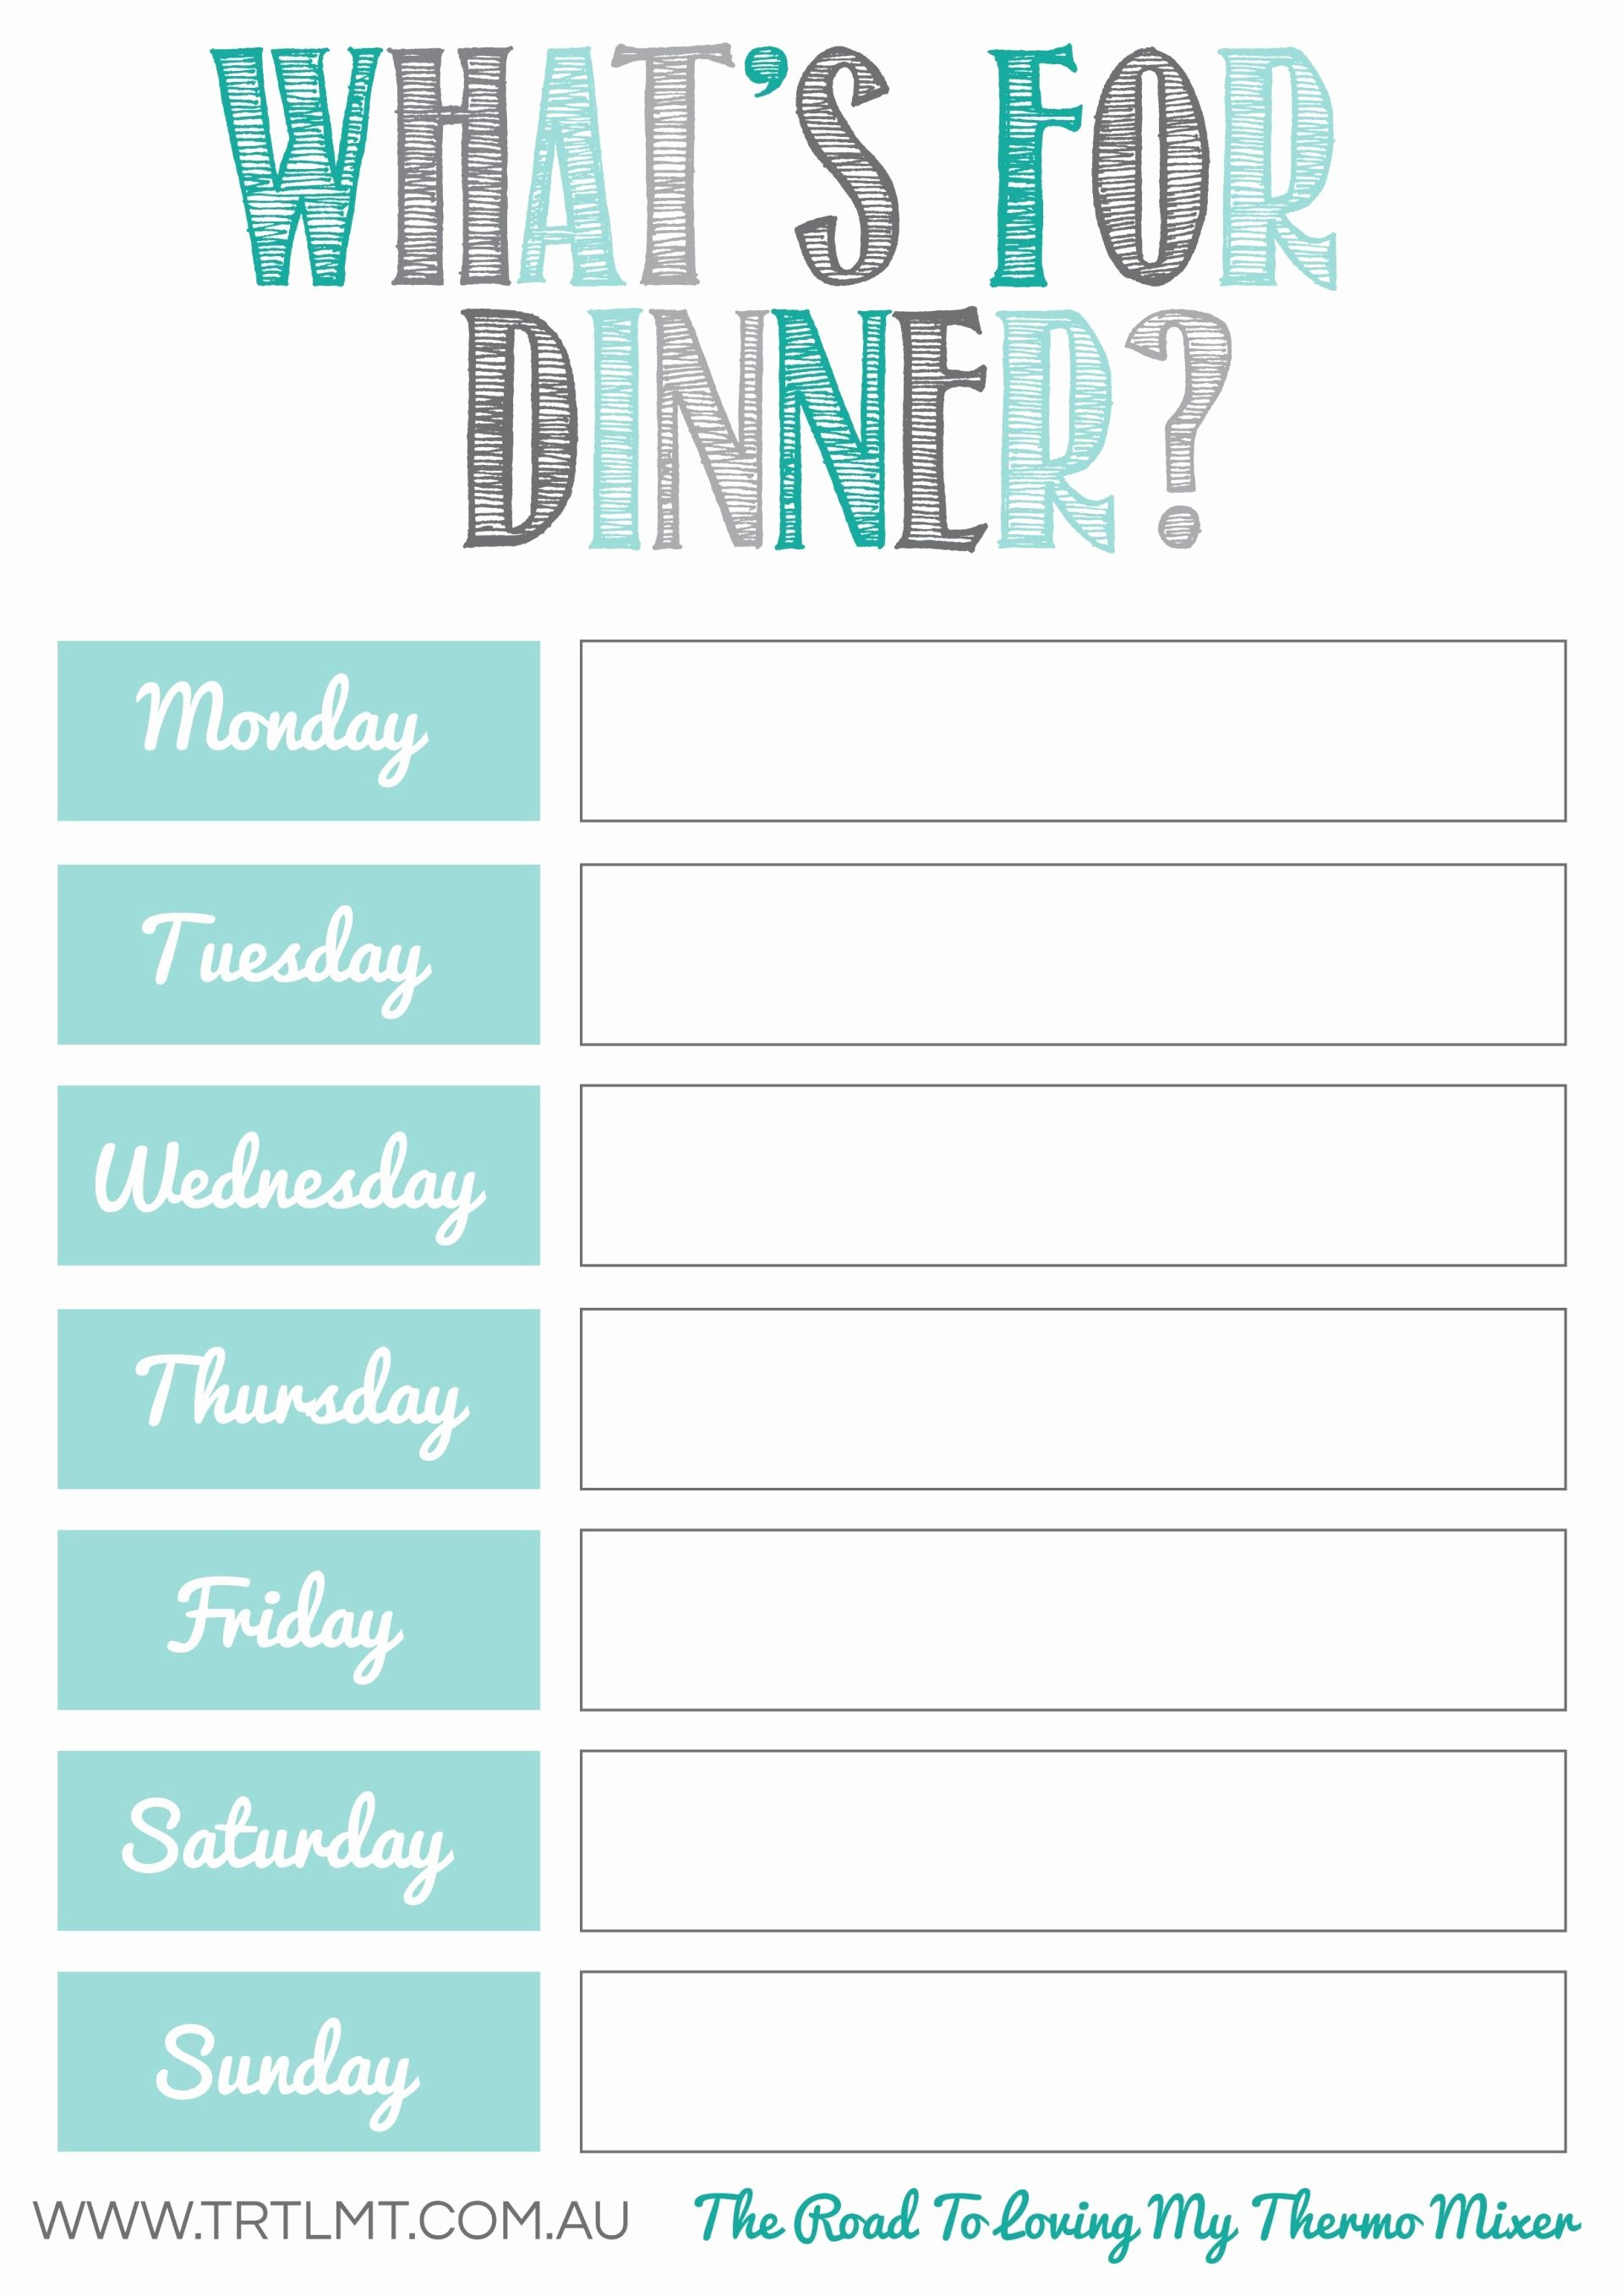 Weekly Menu Template Word Inspirational What S for Dinner 2 Fb organization